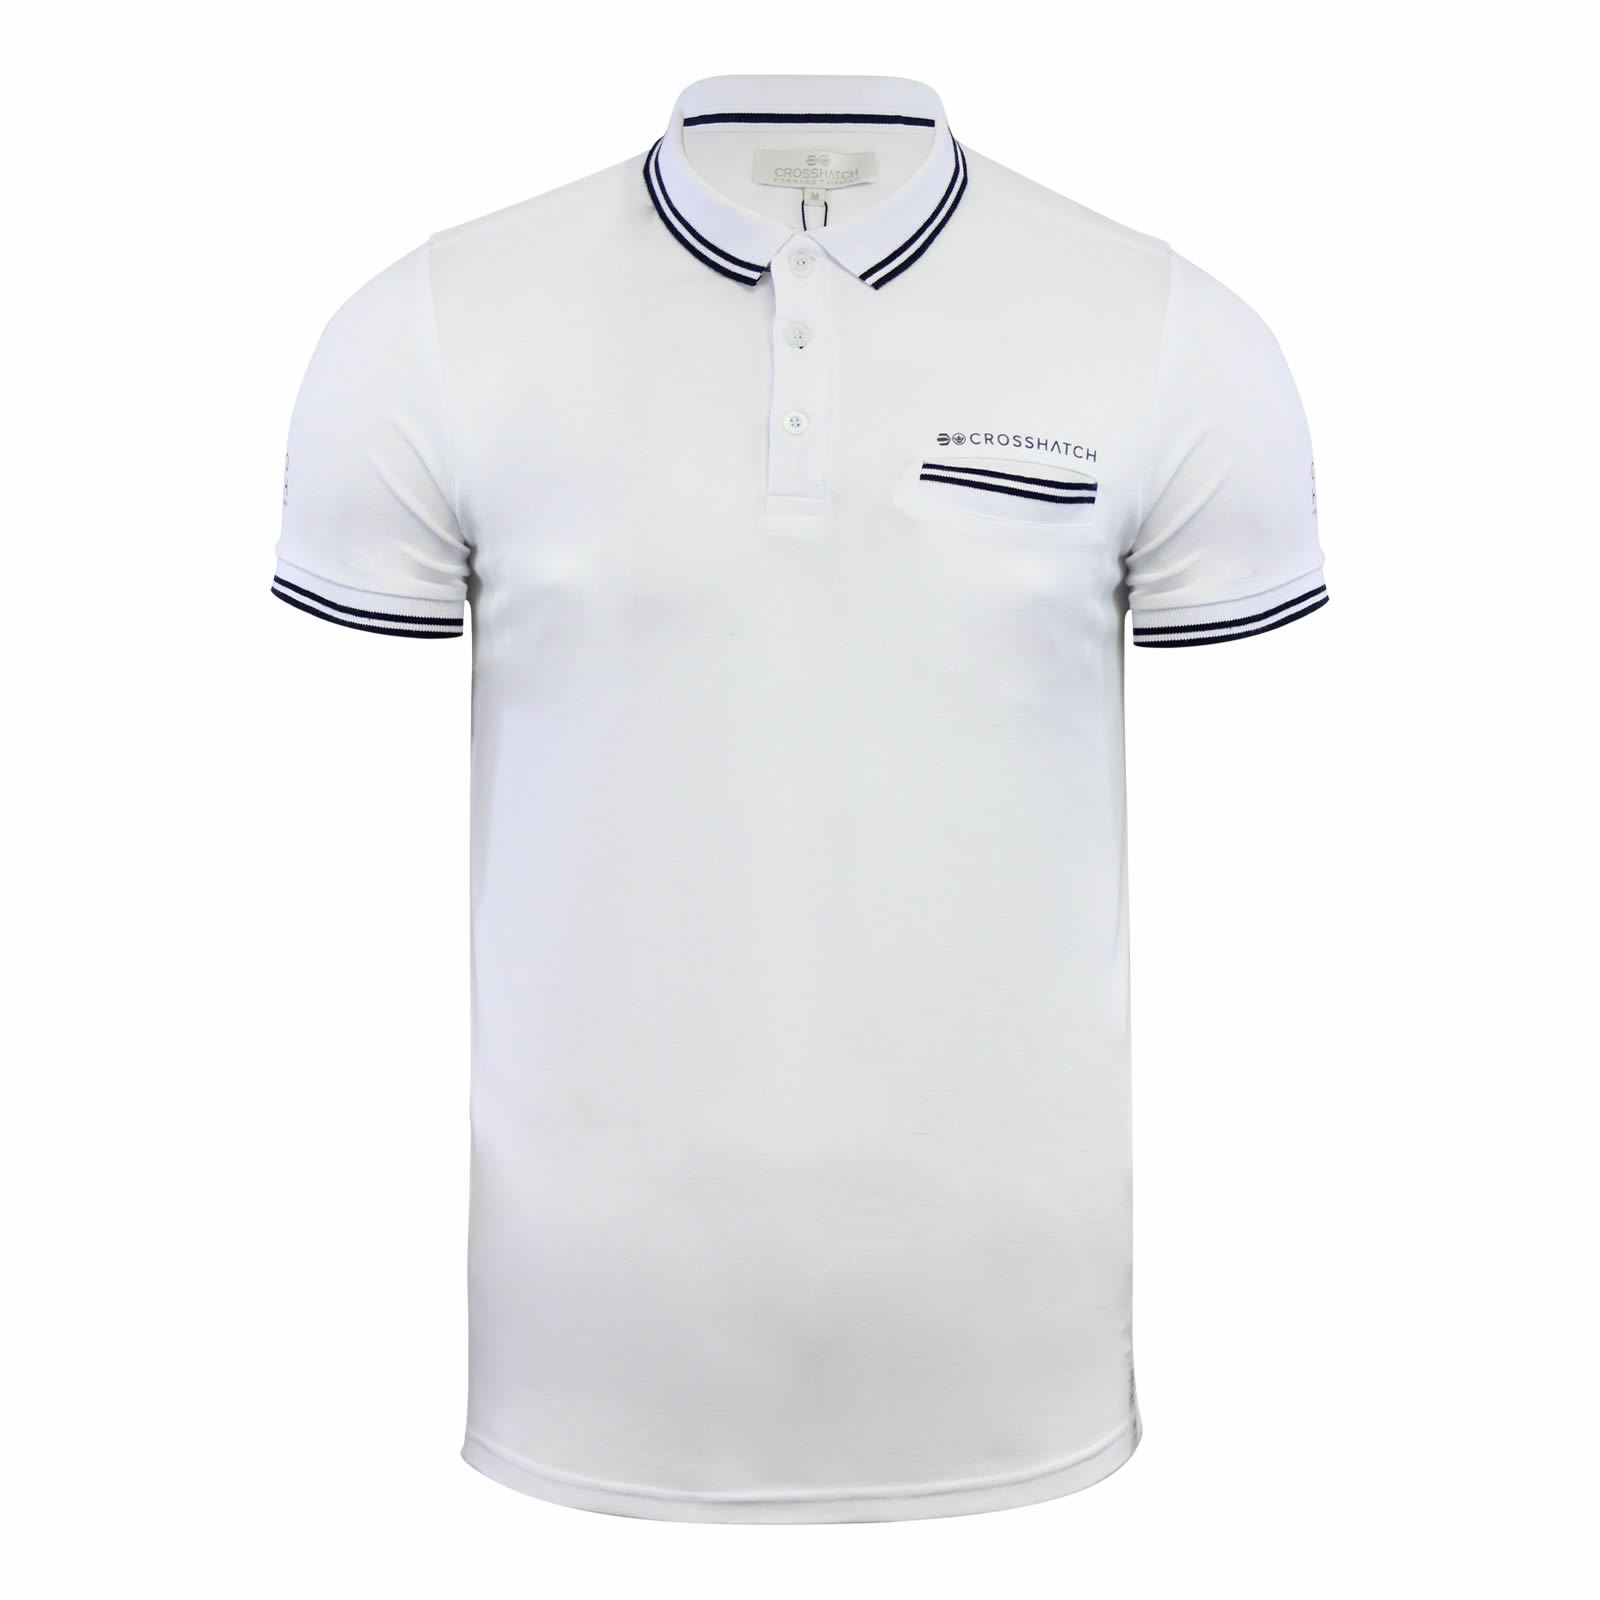 Crosshatch-Mens-Polo-T-Shirt-Pique-Polo-Cotton-Collared-Short-Sleeve-T-Shirt thumbnail 64